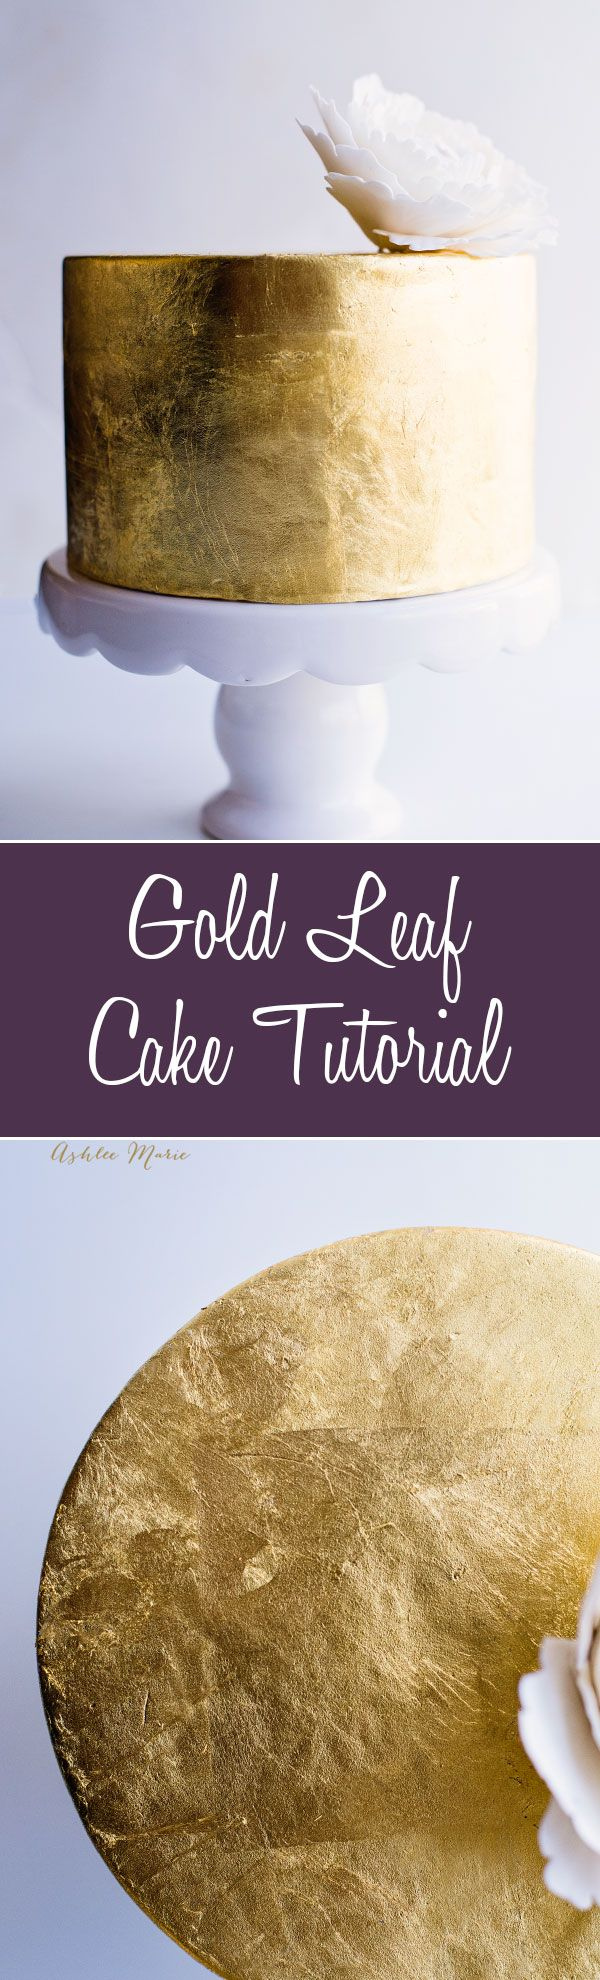 25+ Best Ideas about Gold Cake on Pinterest Gold ...